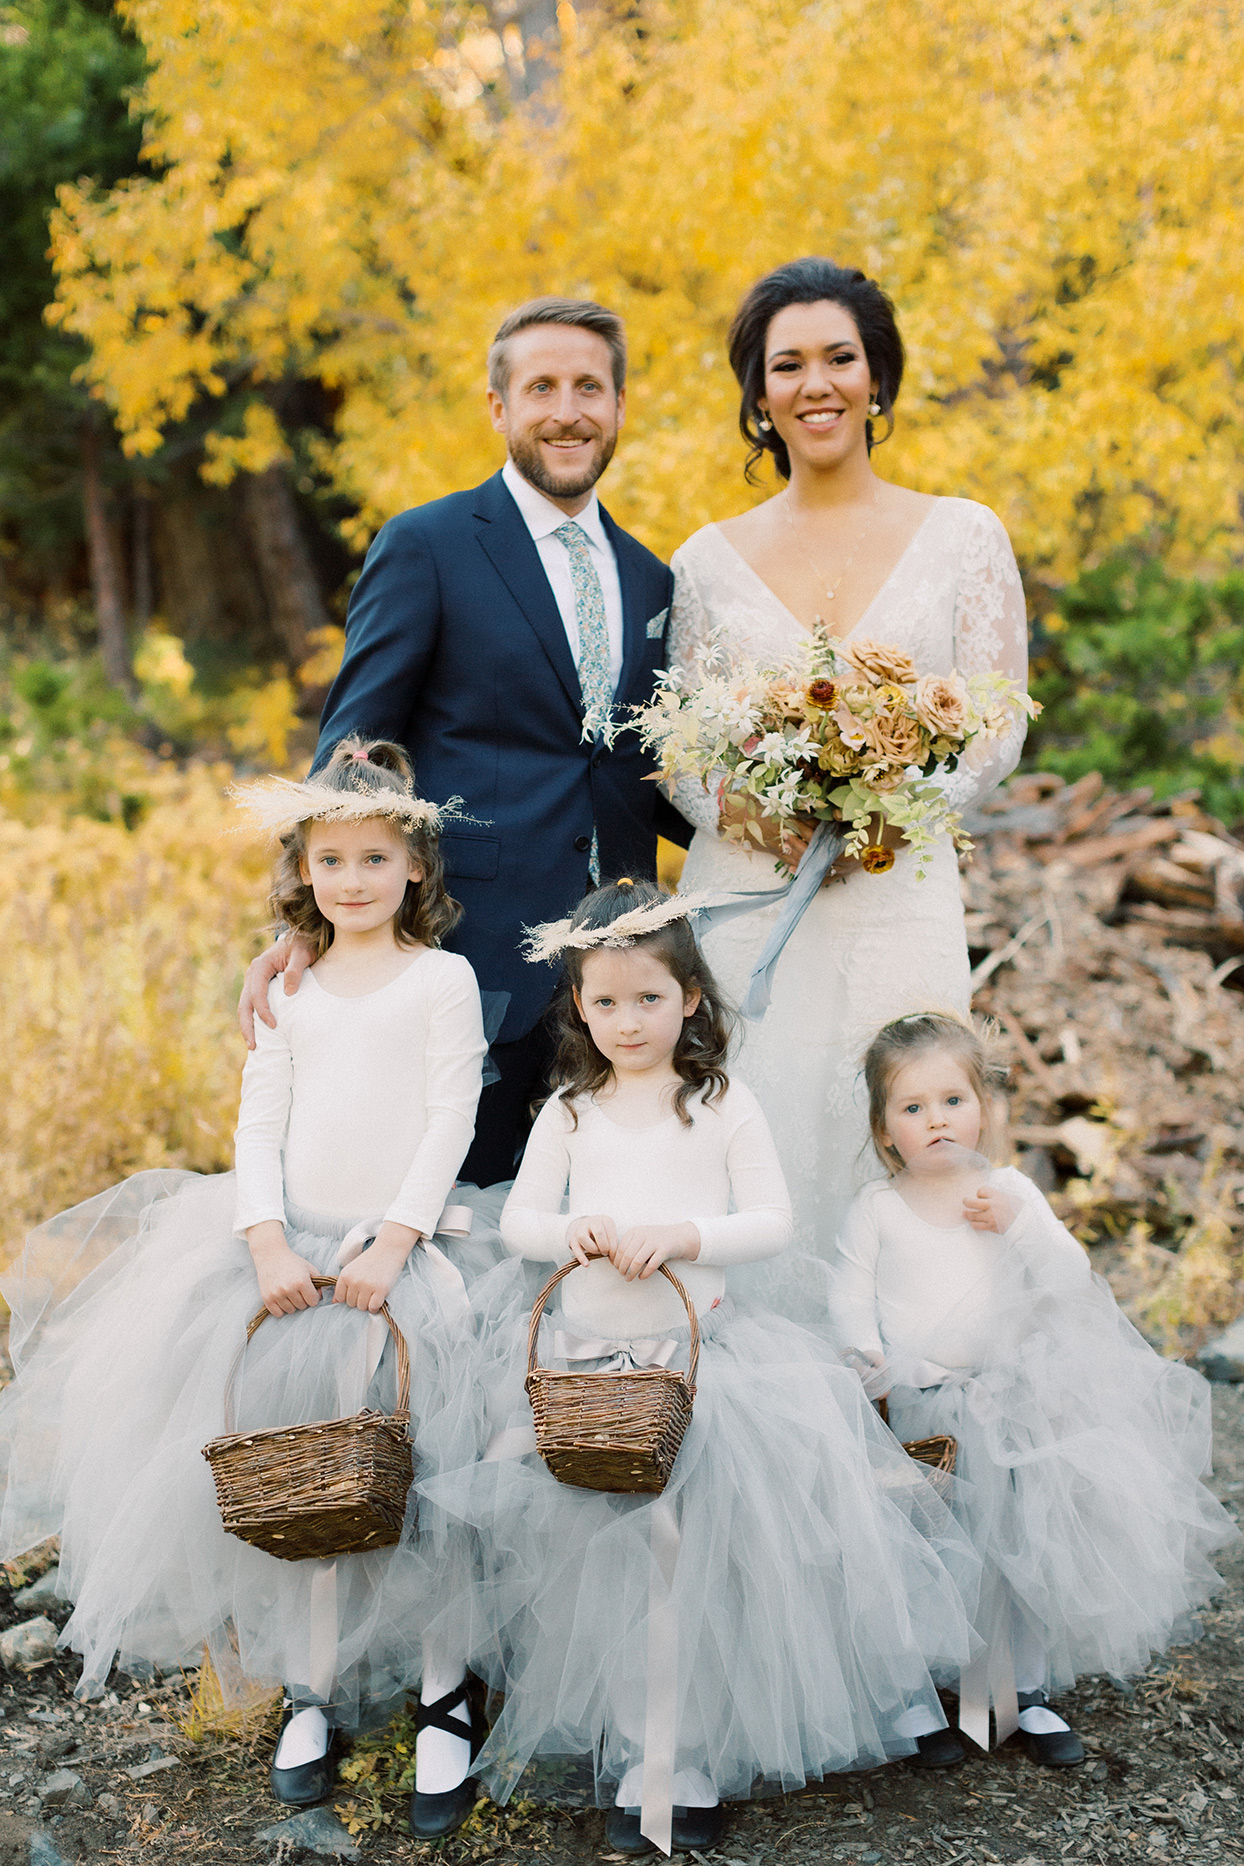 bride and groom posing with three flower girls in gray tulle skirts holding wicker baskets